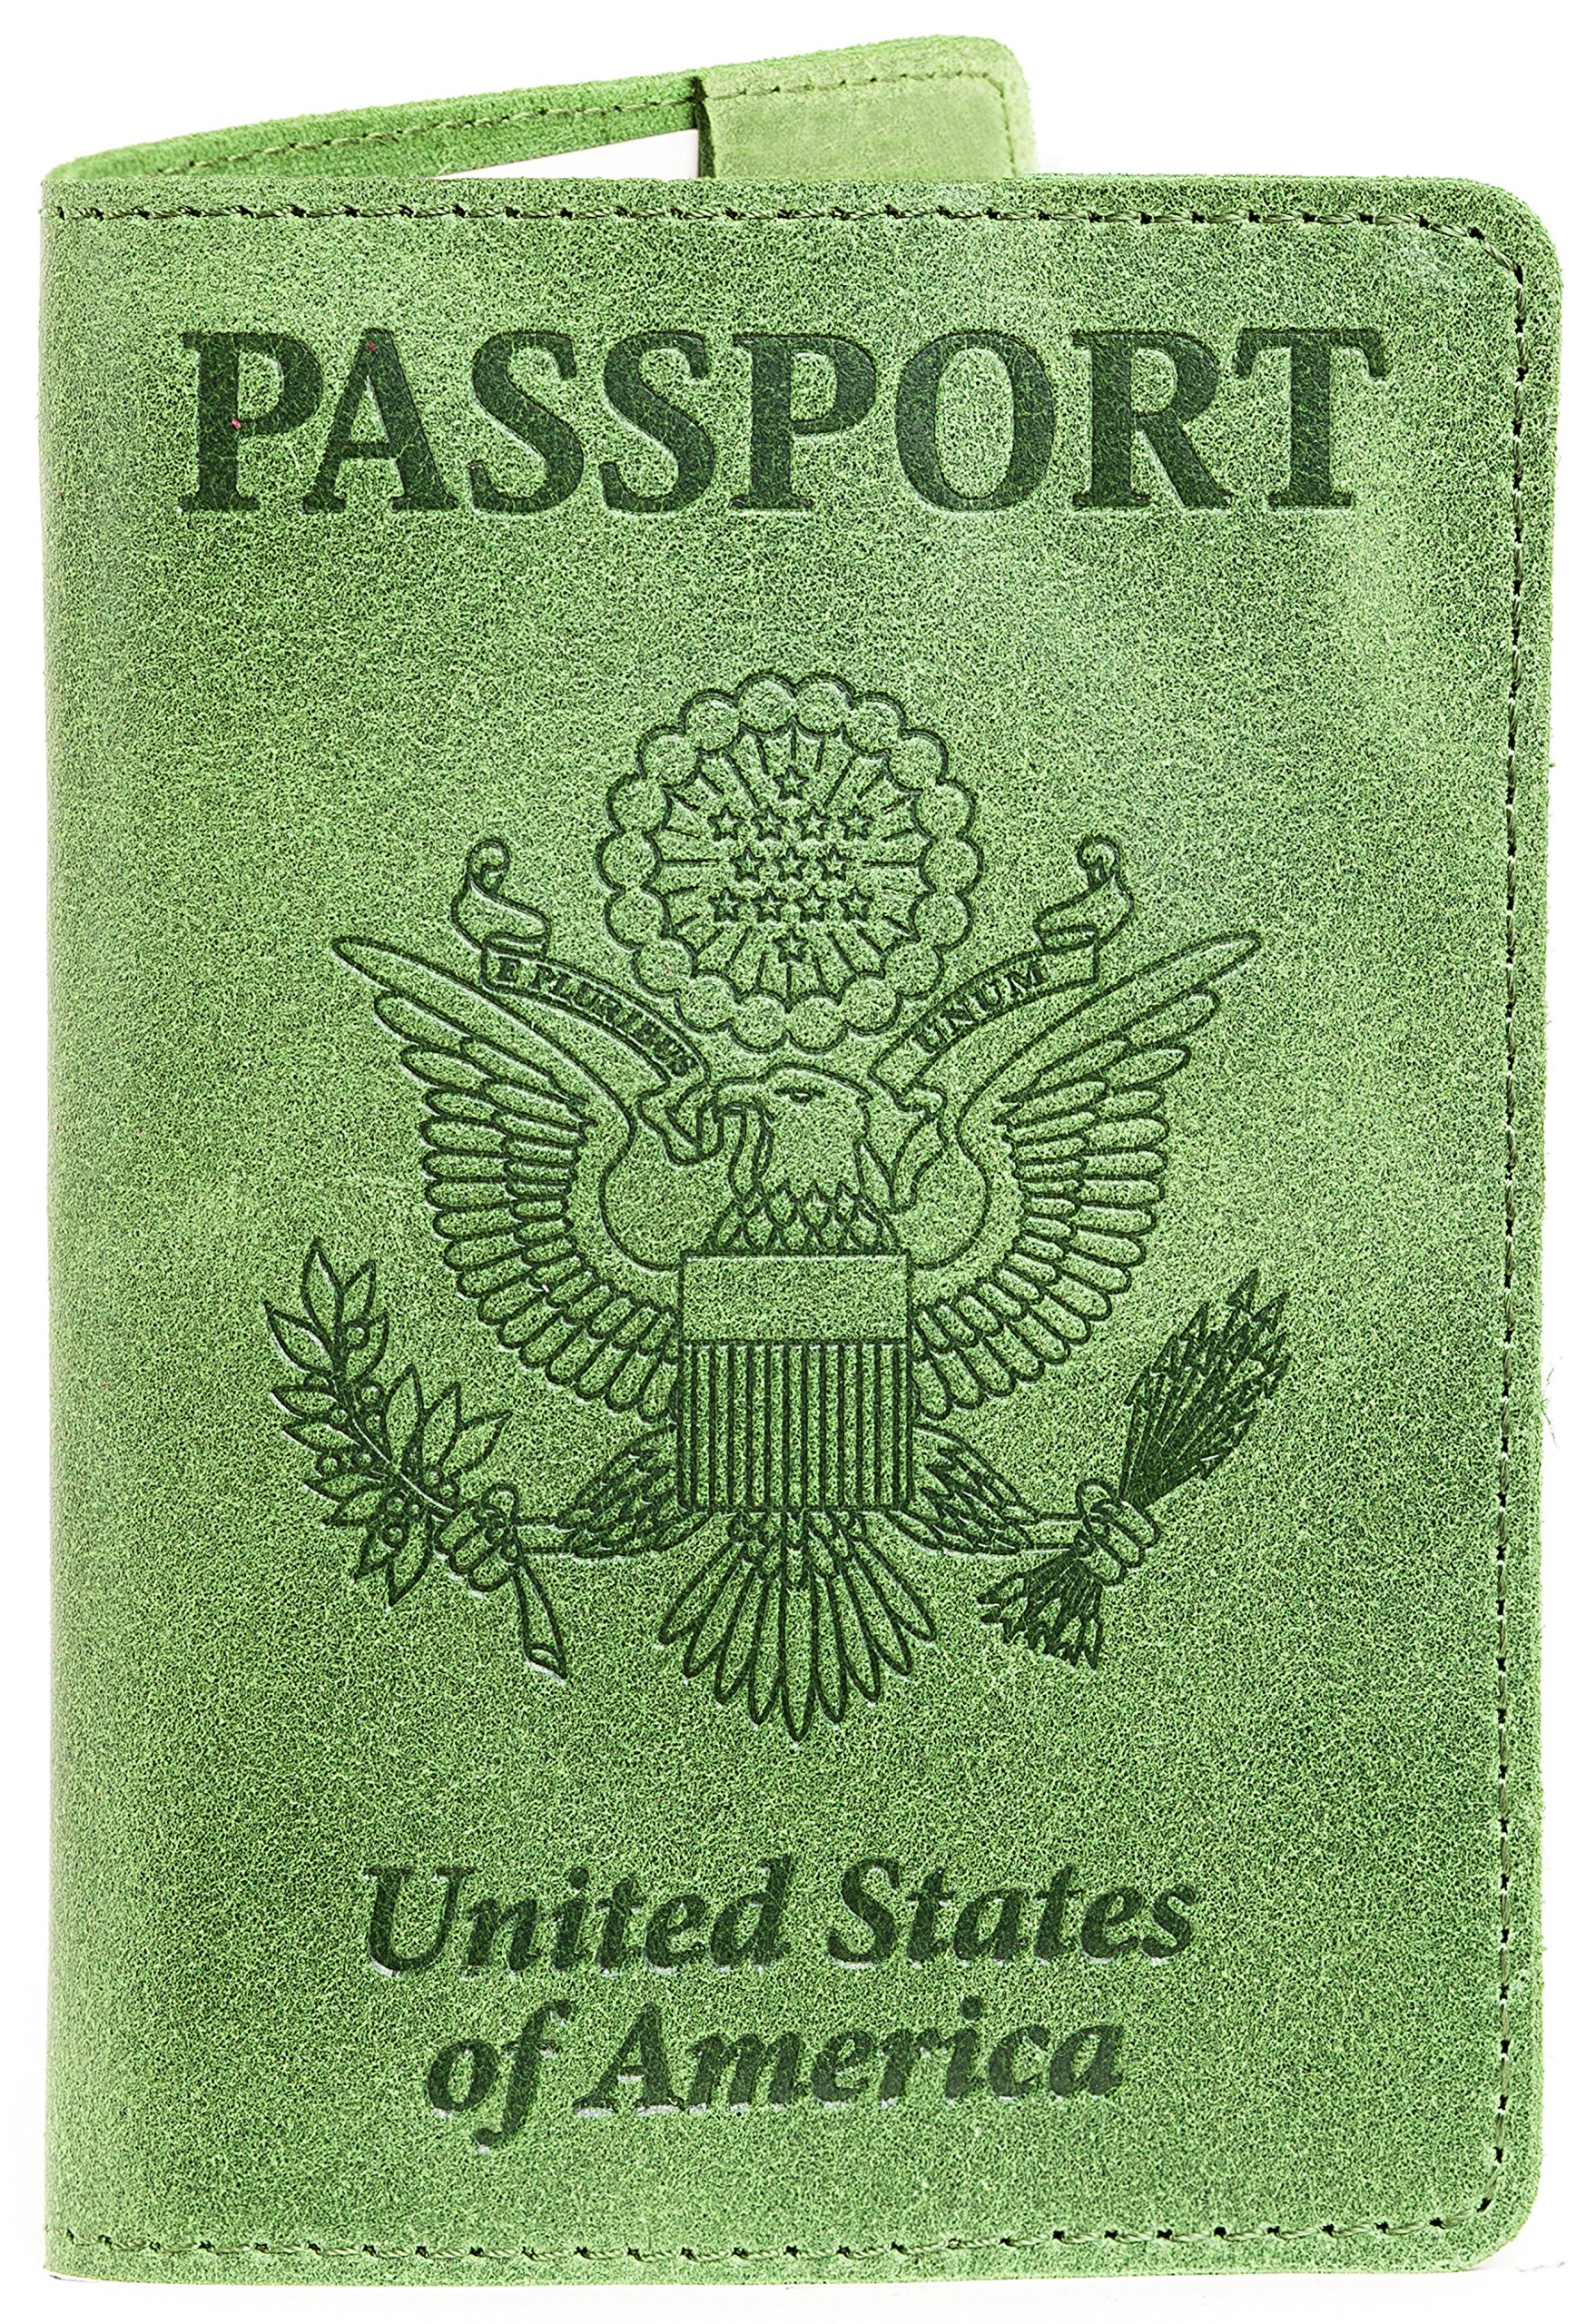 Leather Passport Cover - Passport Holder (Green Lime)